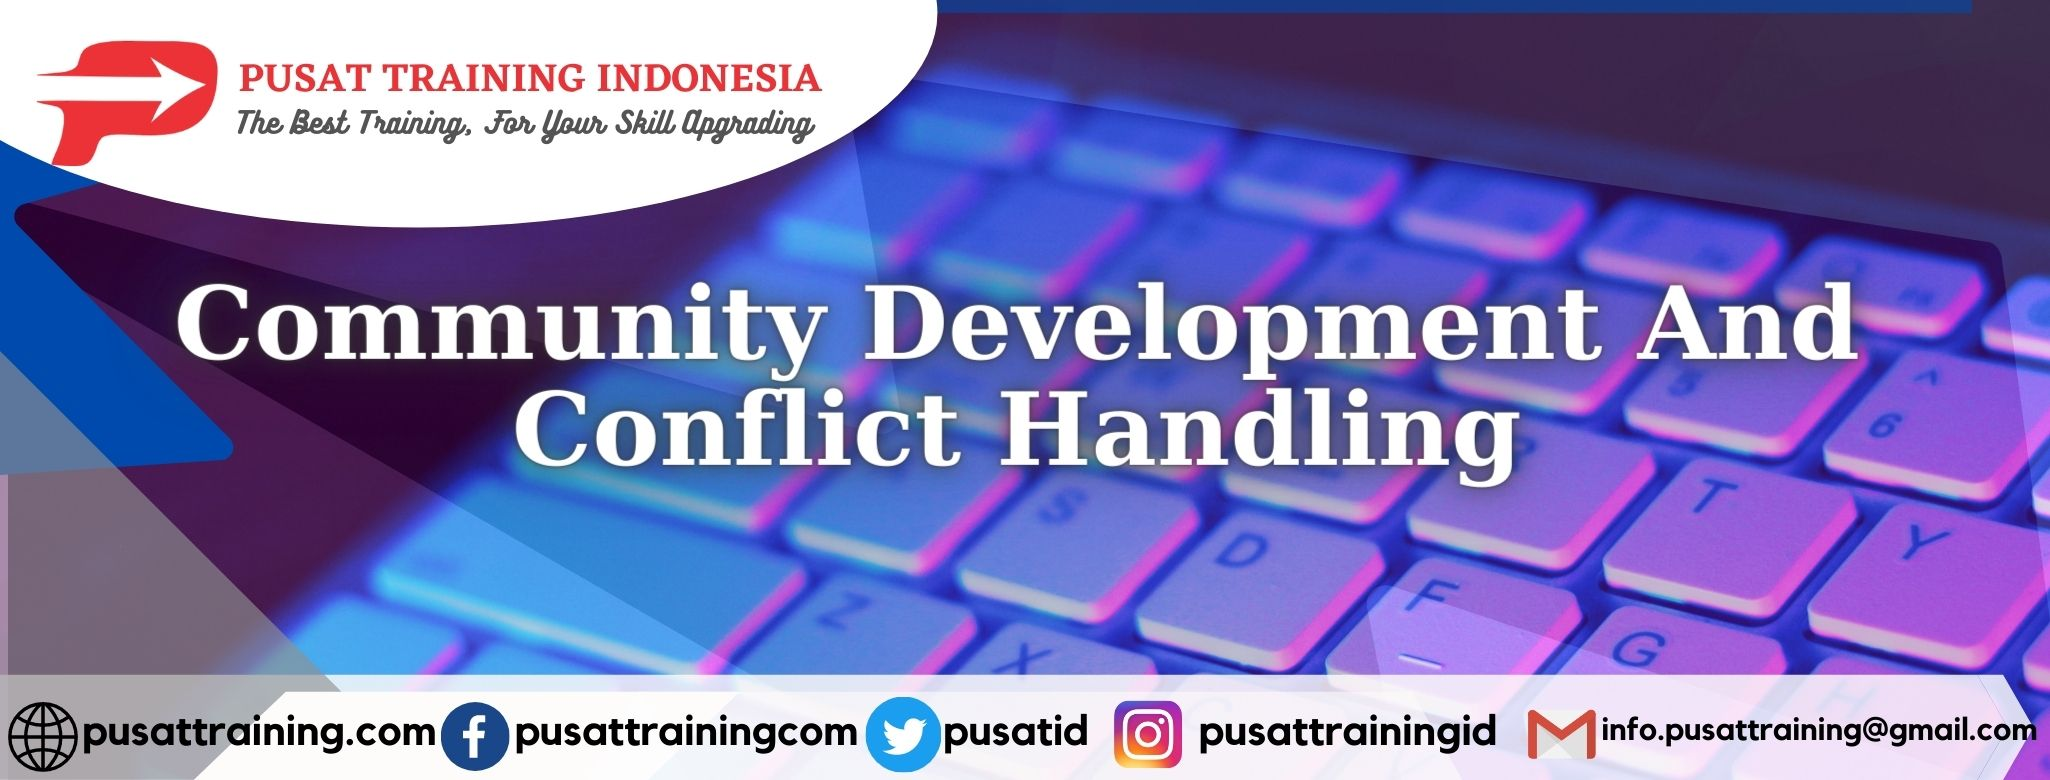 Community-Development-And-Conflict-Handling